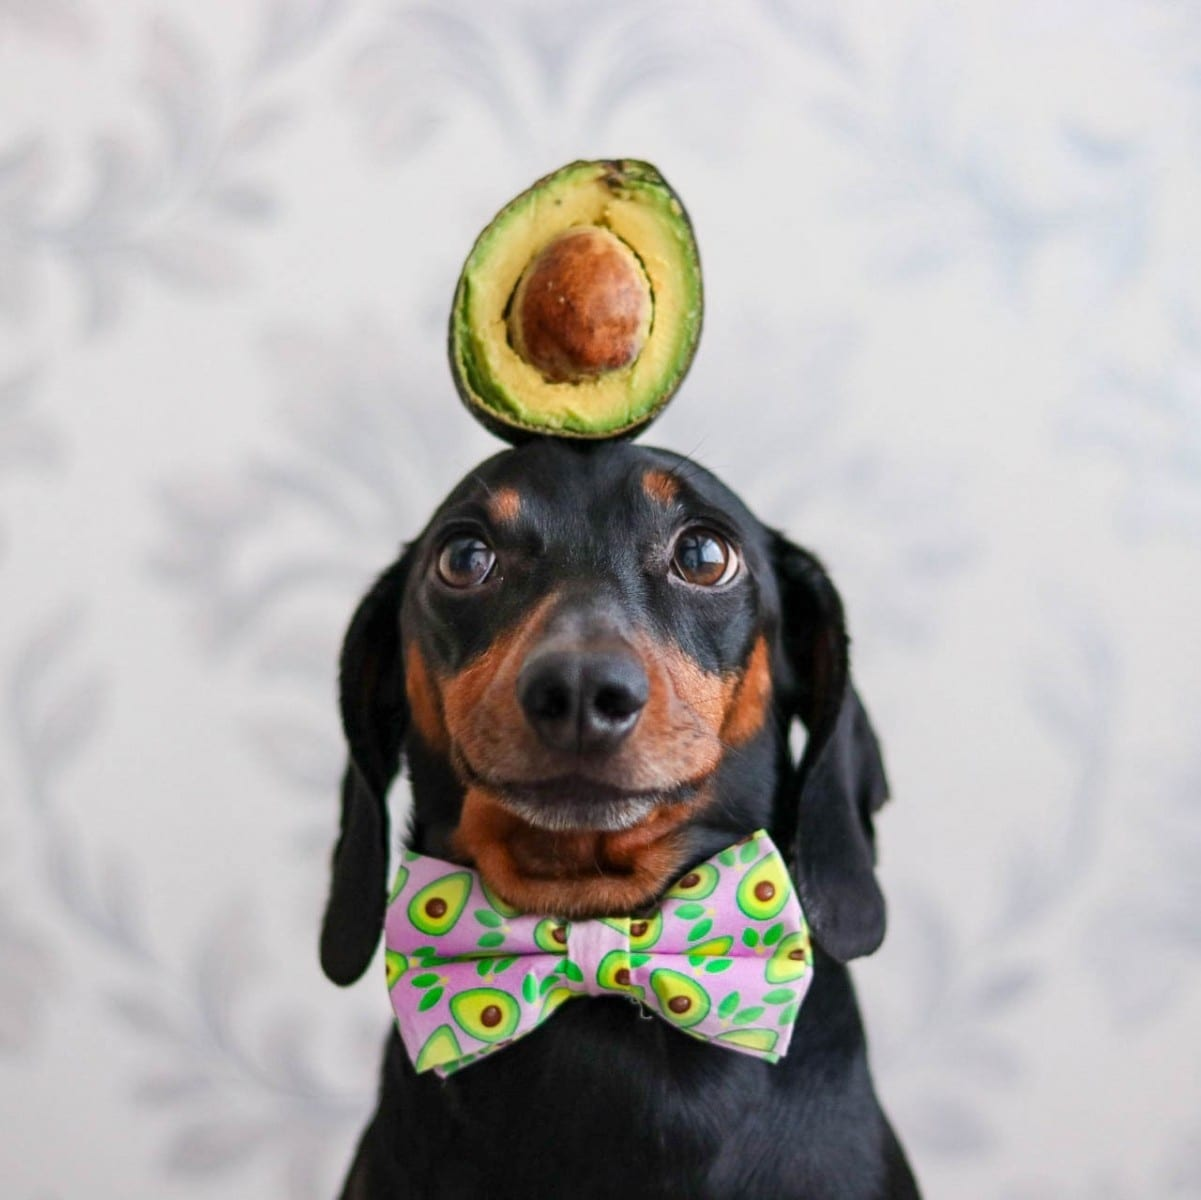 Harlso The Amazing Sausage Dog Attracts Huge Instagram Following By Balancing Everyday Items On His Head